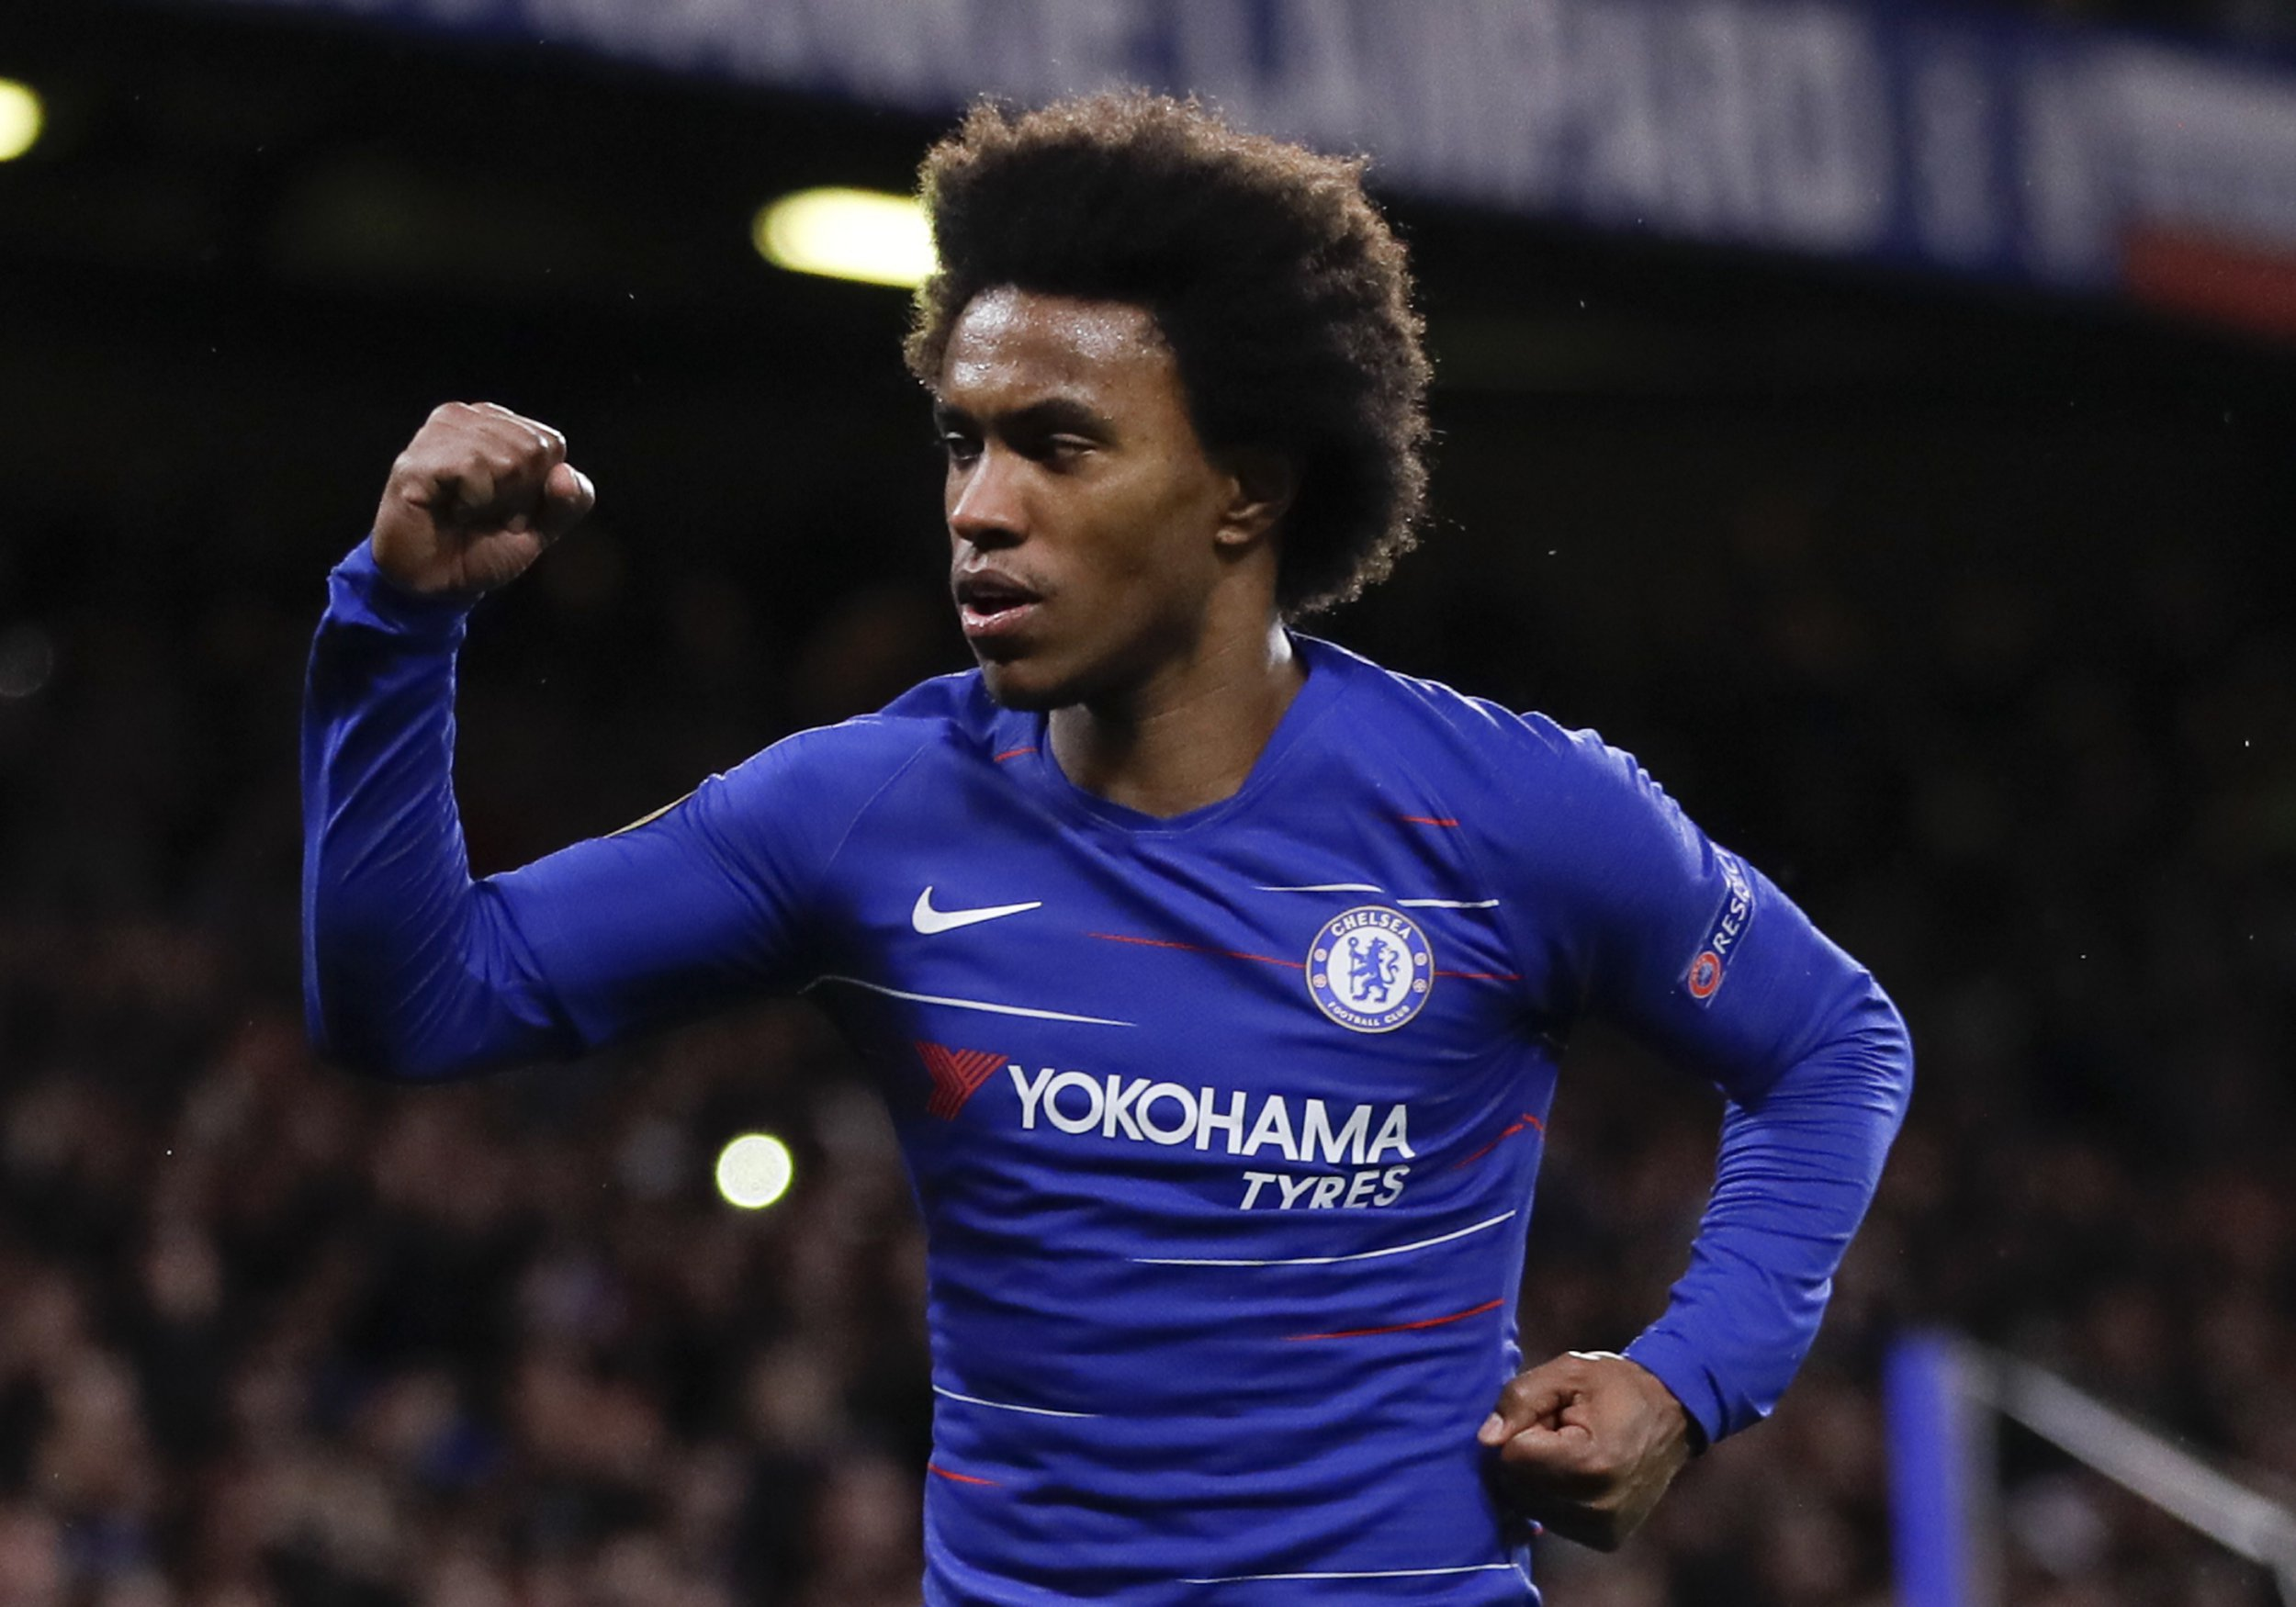 Chelsea's Willian celebrates after scoring his side's second goal during the Europa League round of 16, first leg soccer match between Chelsea and Dynamo Kyiv at Stamford Bridge stadium in London, Thursday, March 7, 2019. (AP Photo/Kirsty Wigglesworth)